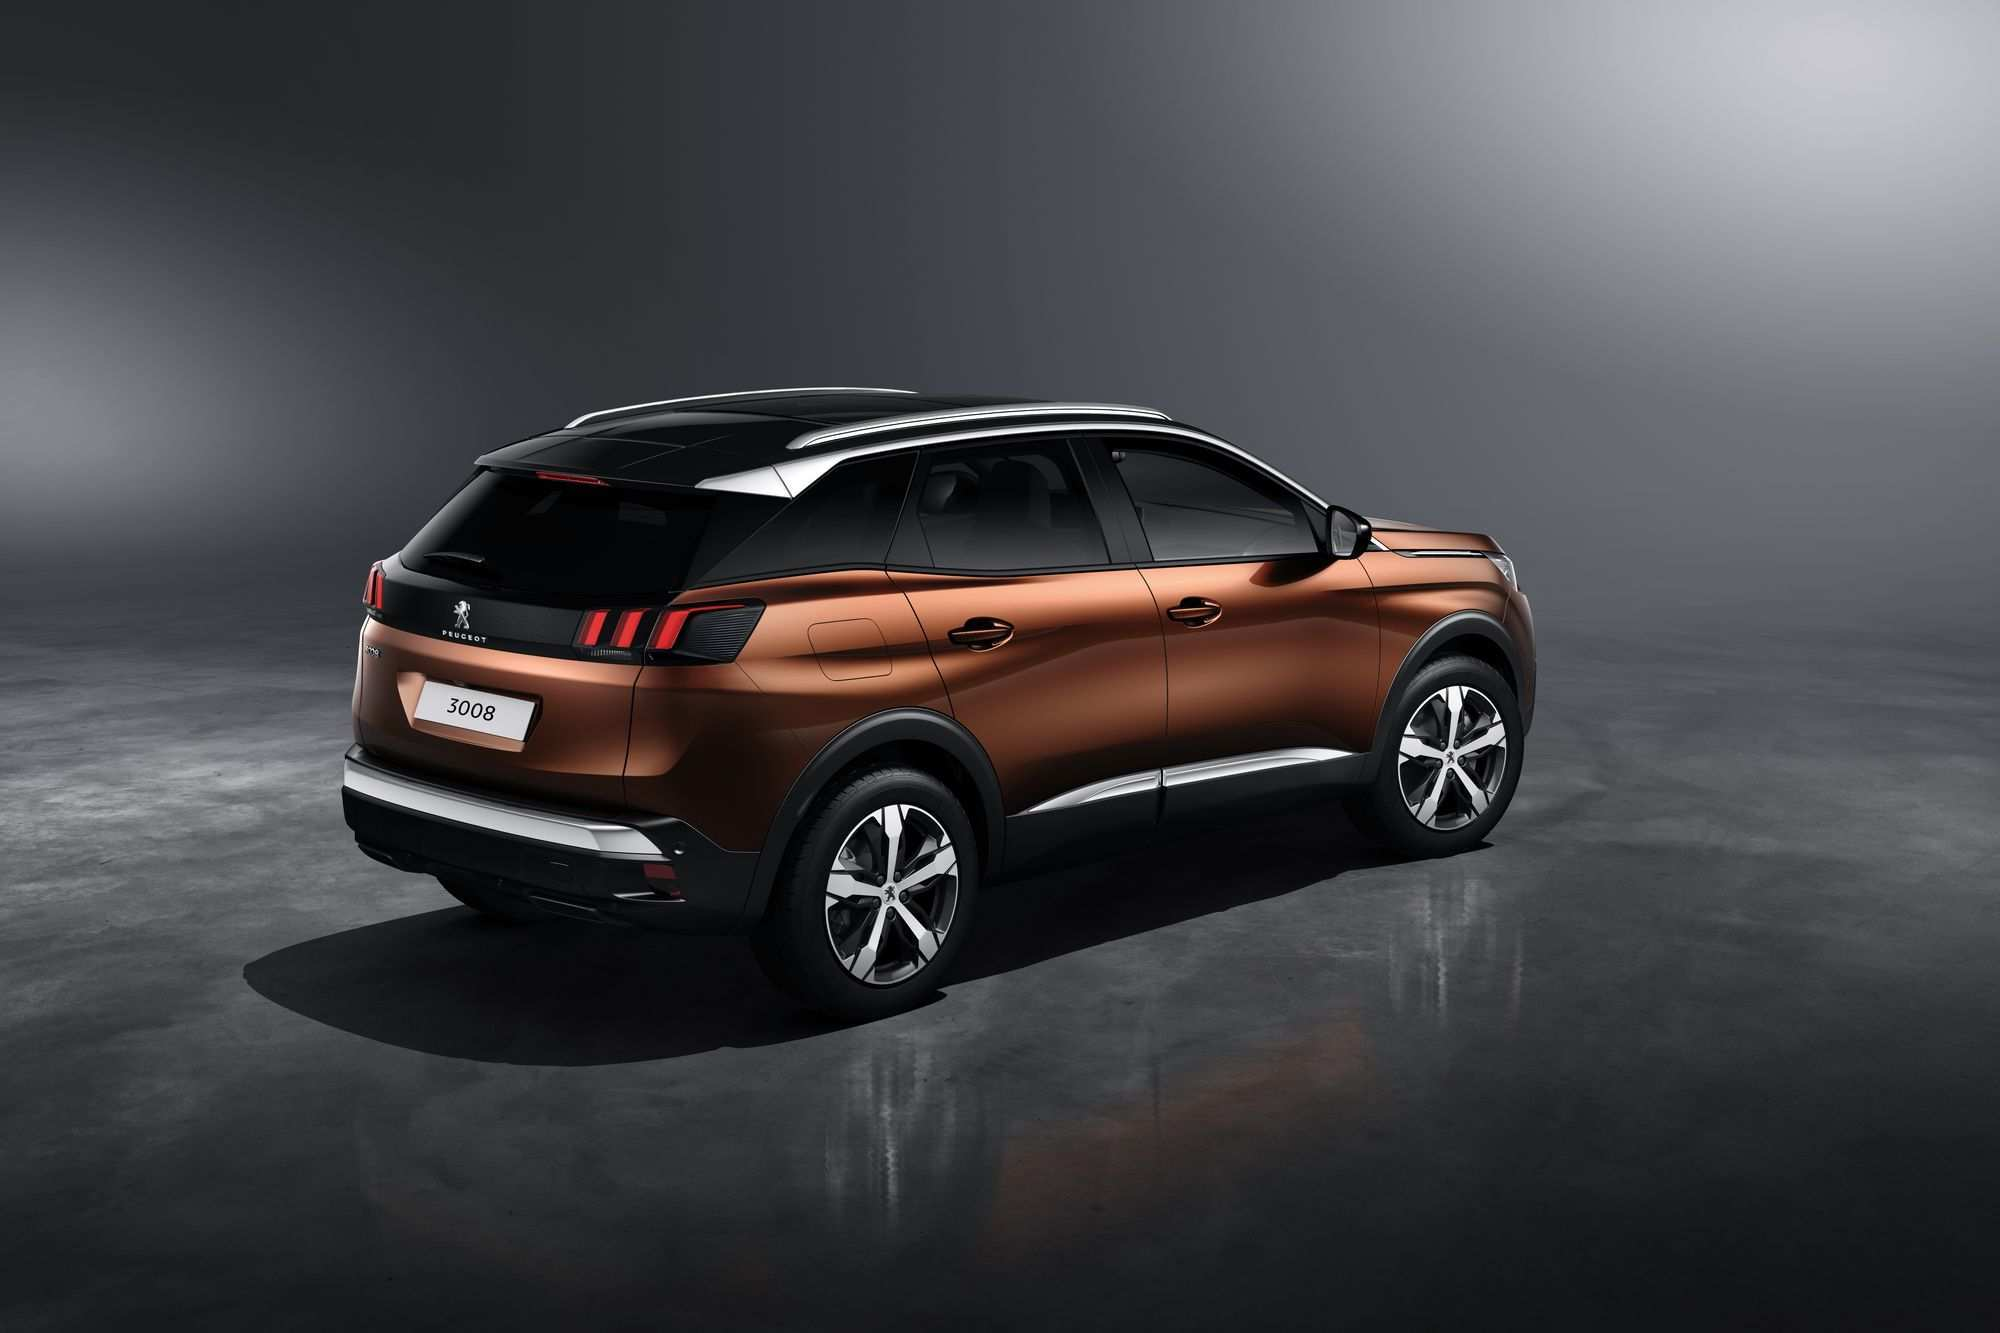 95 All New 2019 Peugeot 3008 Hybrid Images with 2019 Peugeot 3008 Hybrid